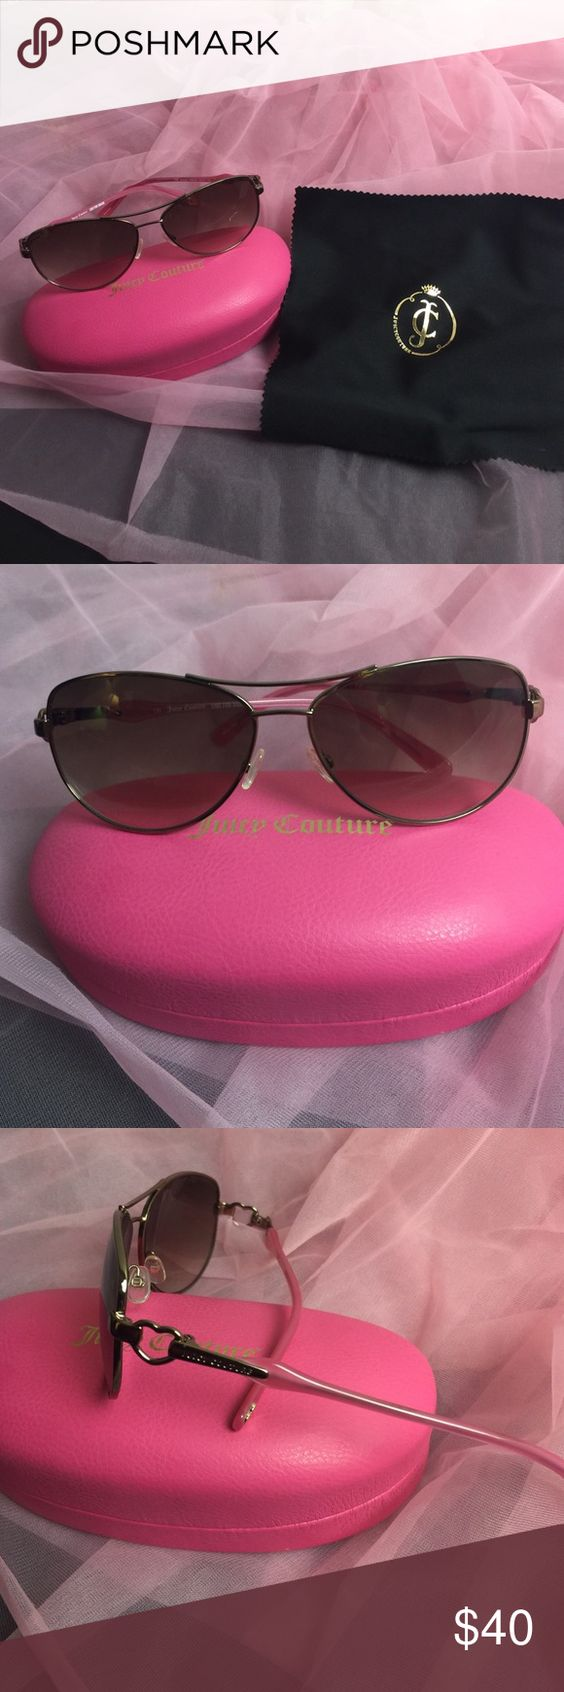 6008502b93 Juicy Couture pink aviator sunglasses